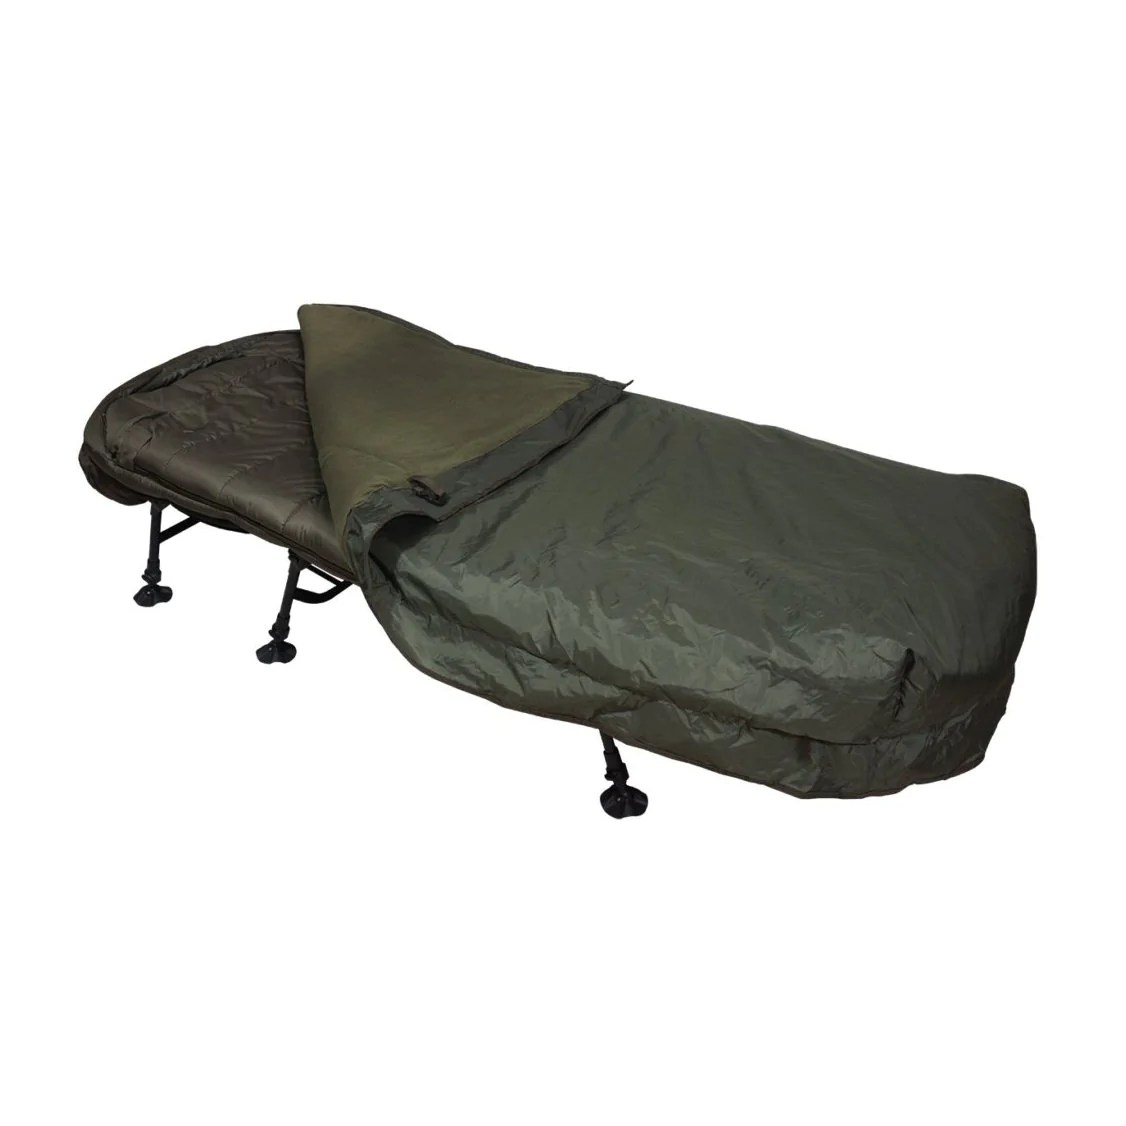 korda chair accessories how to make a mat sonik sk tek thermal bed cover  brodies angling and outdoors